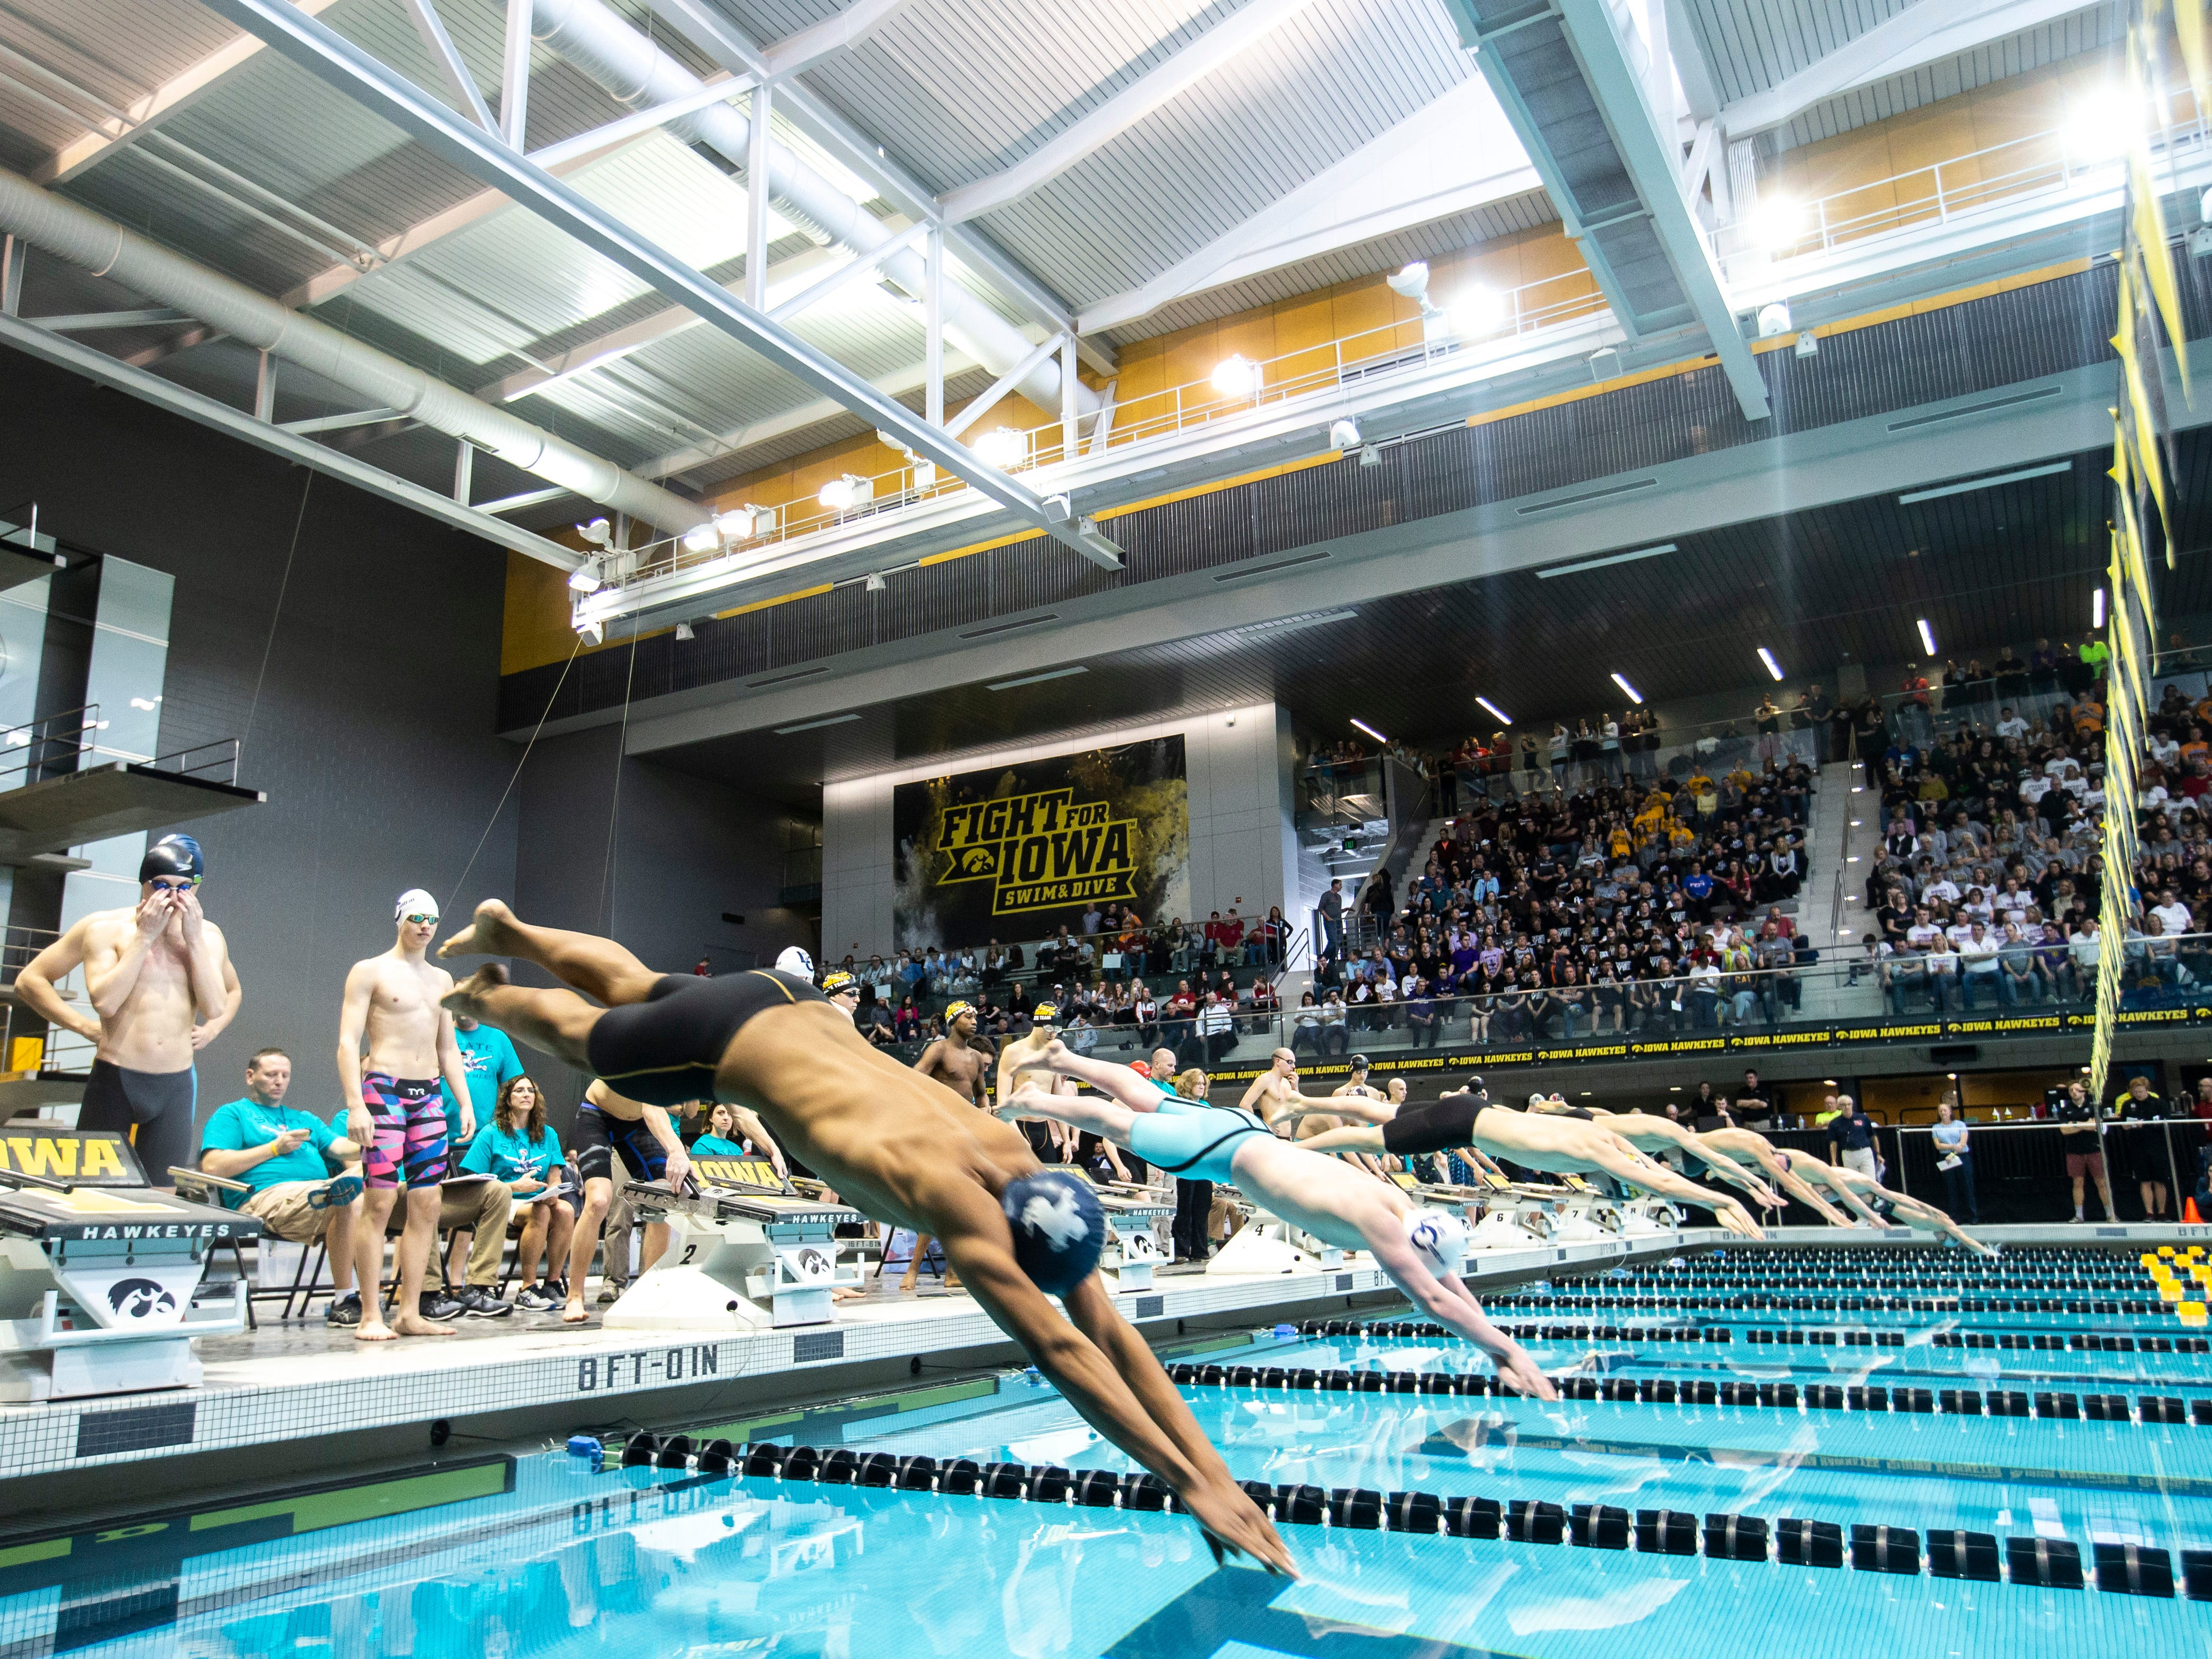 Competitors leap off the blocks in the 200 yard freestyle relay during the Iowa boys' state swimming regional championship meet on Saturday, Feb. 9, 2019 at Campus Recreation and Wellness Center on the University of Iowa campus in Iowa City, Iowa.